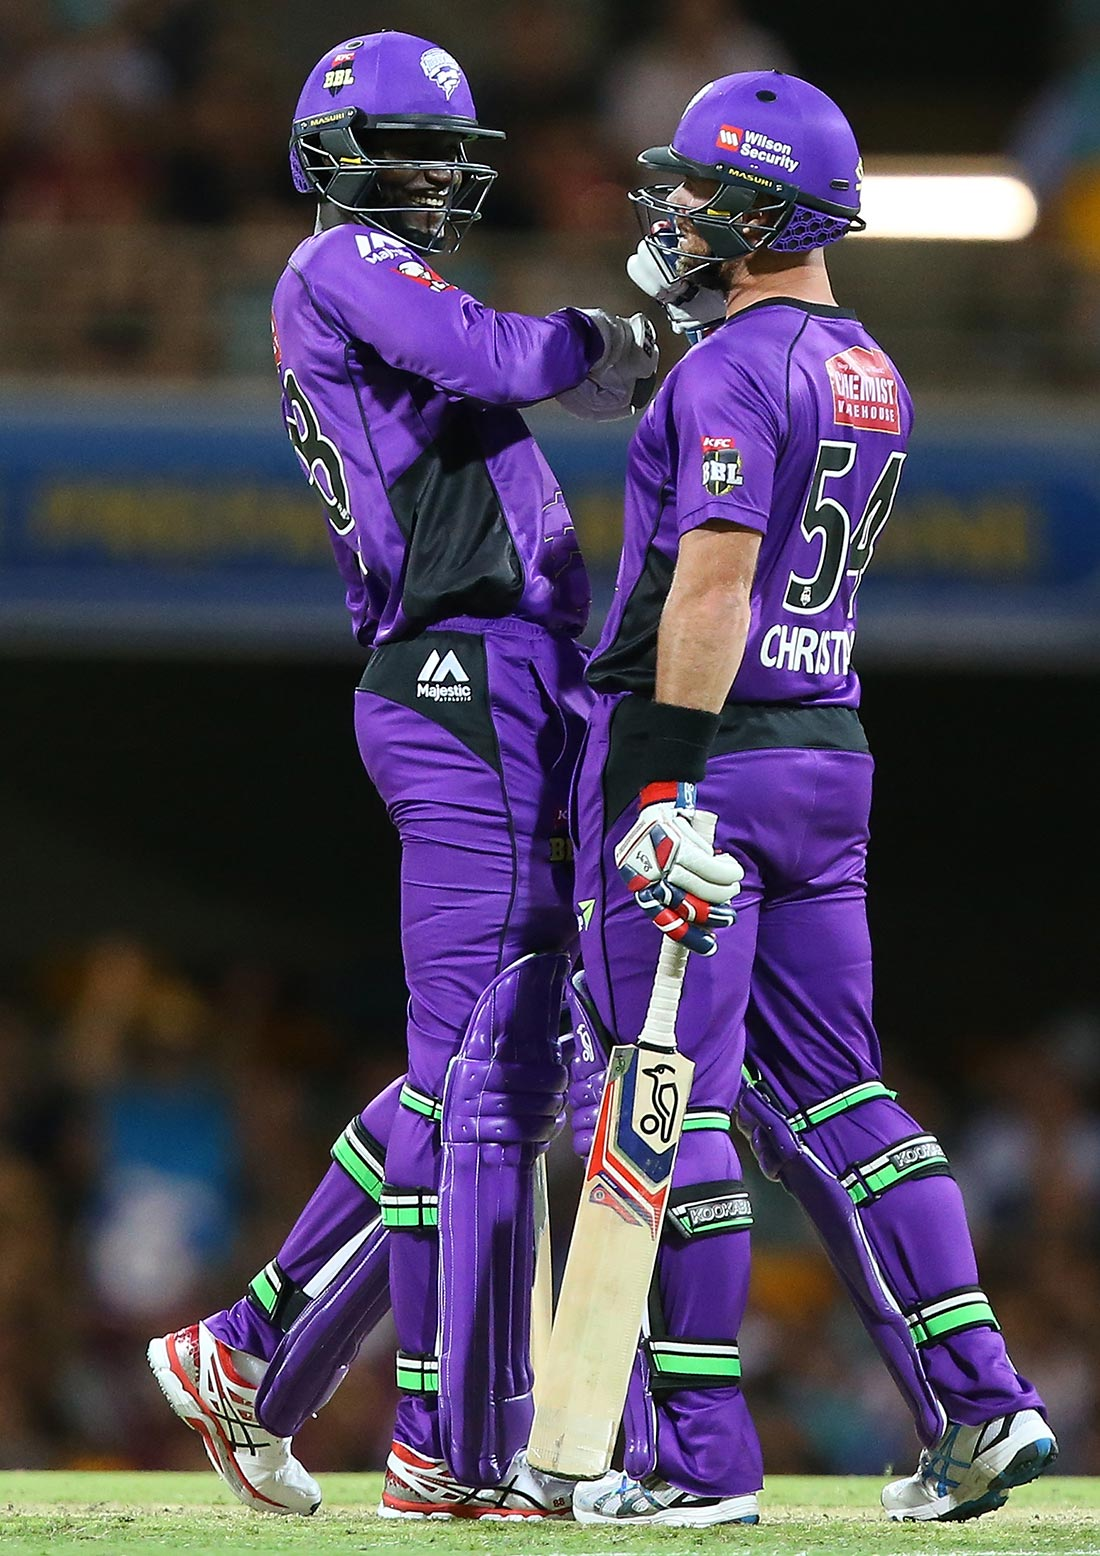 Sammy congratulates Christian on his monster hit // Getty